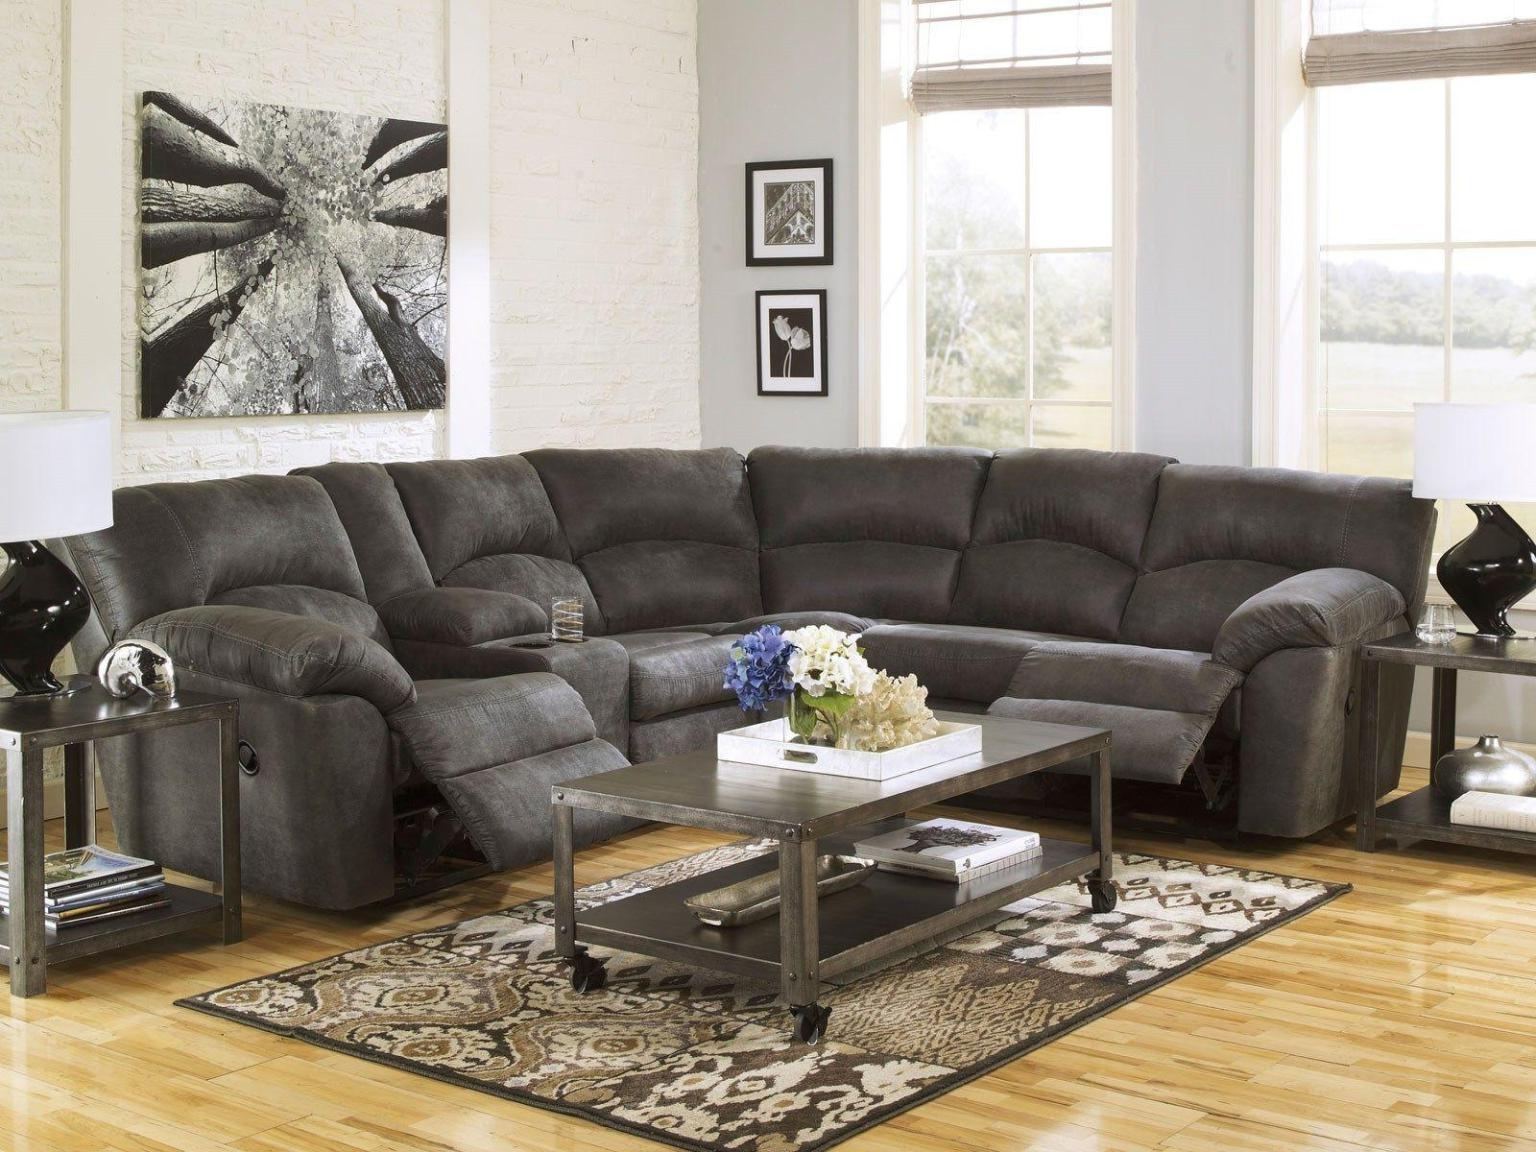 Widely Used Sectional Sofas With Recliners For Small Spaces : Doherty House In Sectional Sofas For Small Spaces With Recliners (View 11 of 15)